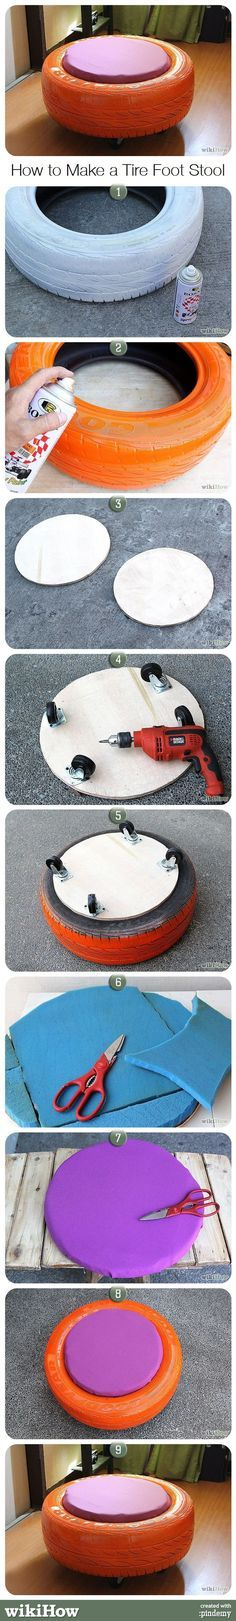 23 More Awesome Man Cave Ideas DIY Projects & Creative Crafts – How To Make Everything Homemade